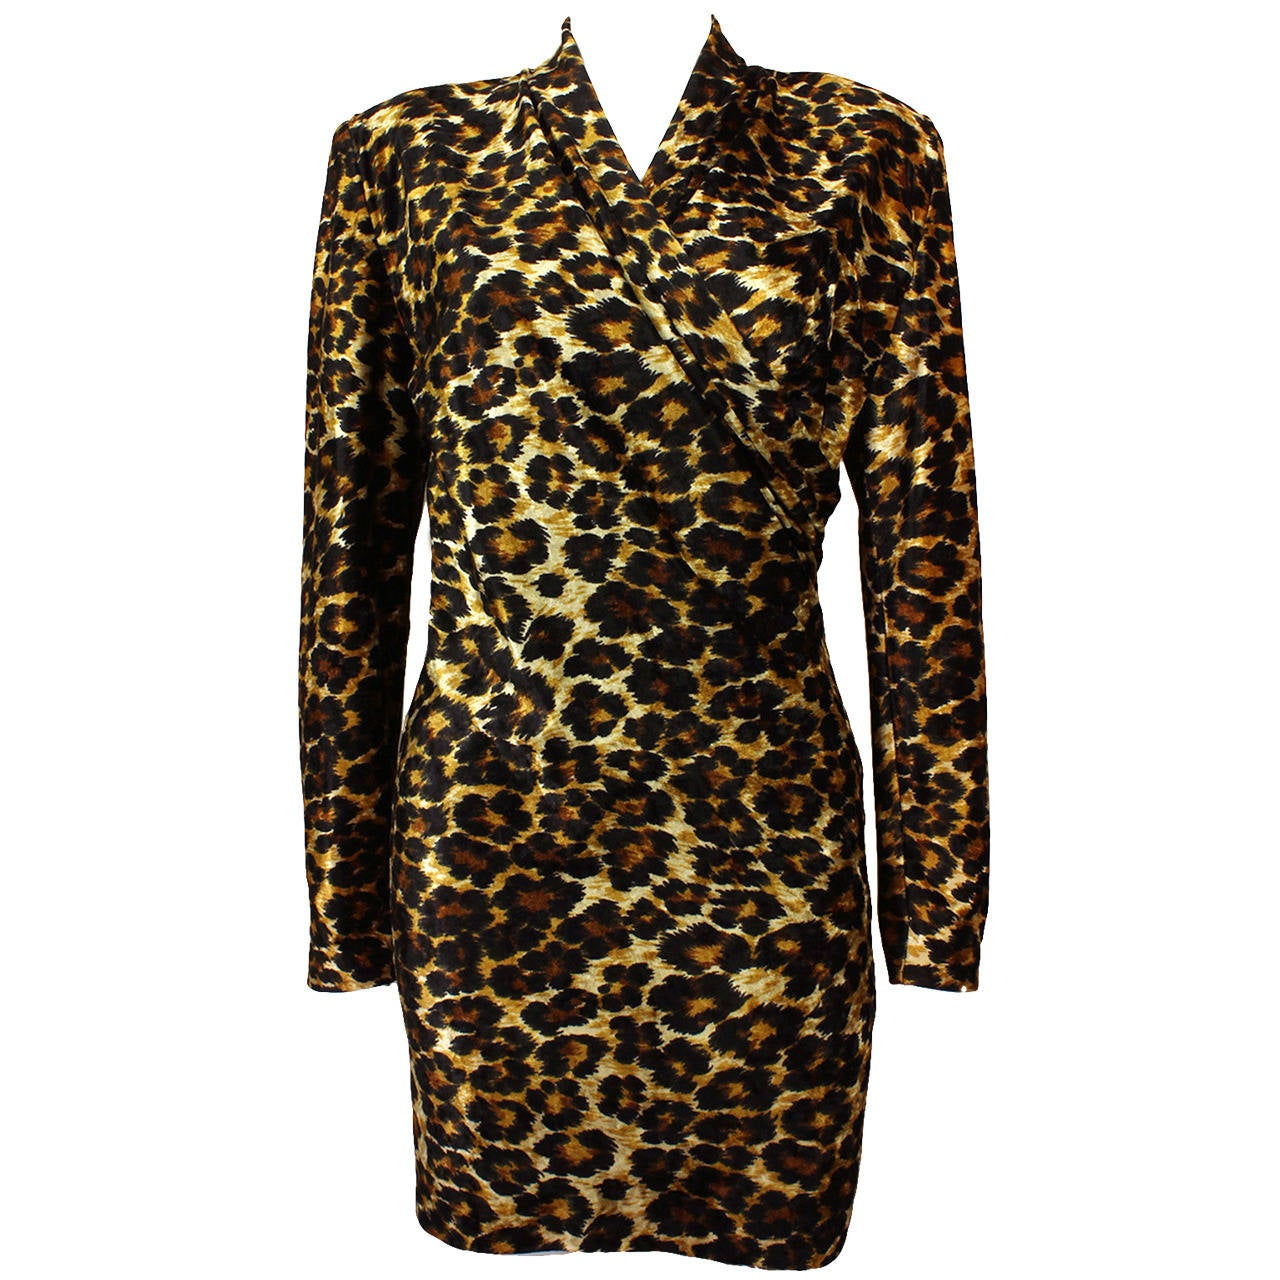 Patrick Kelly Leopard Print Wrap Dress